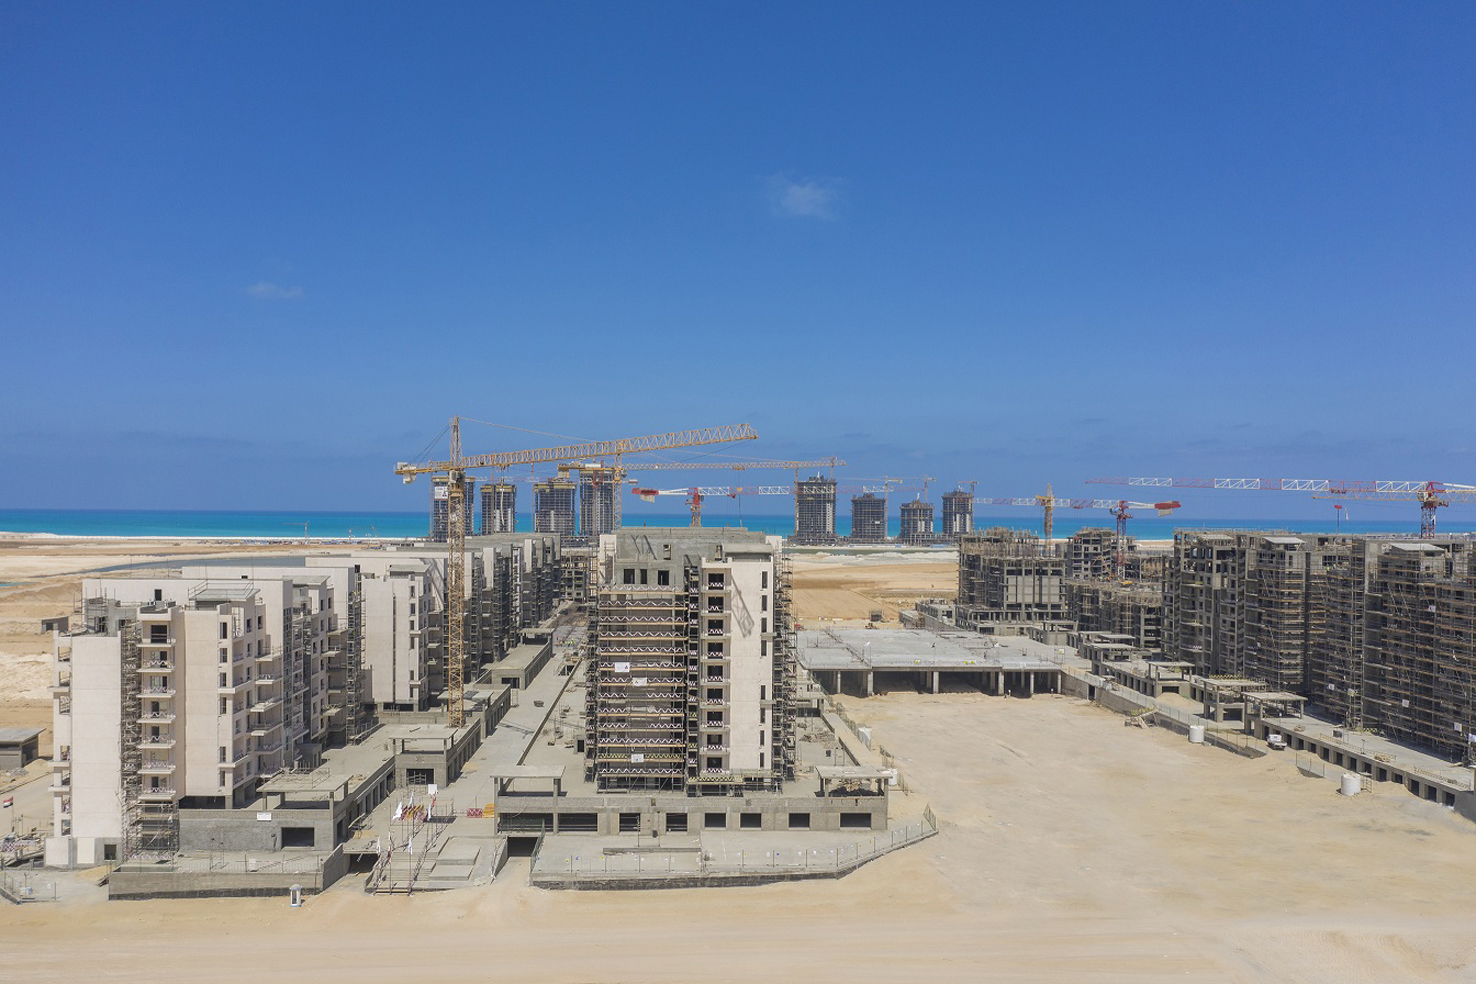 New Alamein City on the Northern Coast